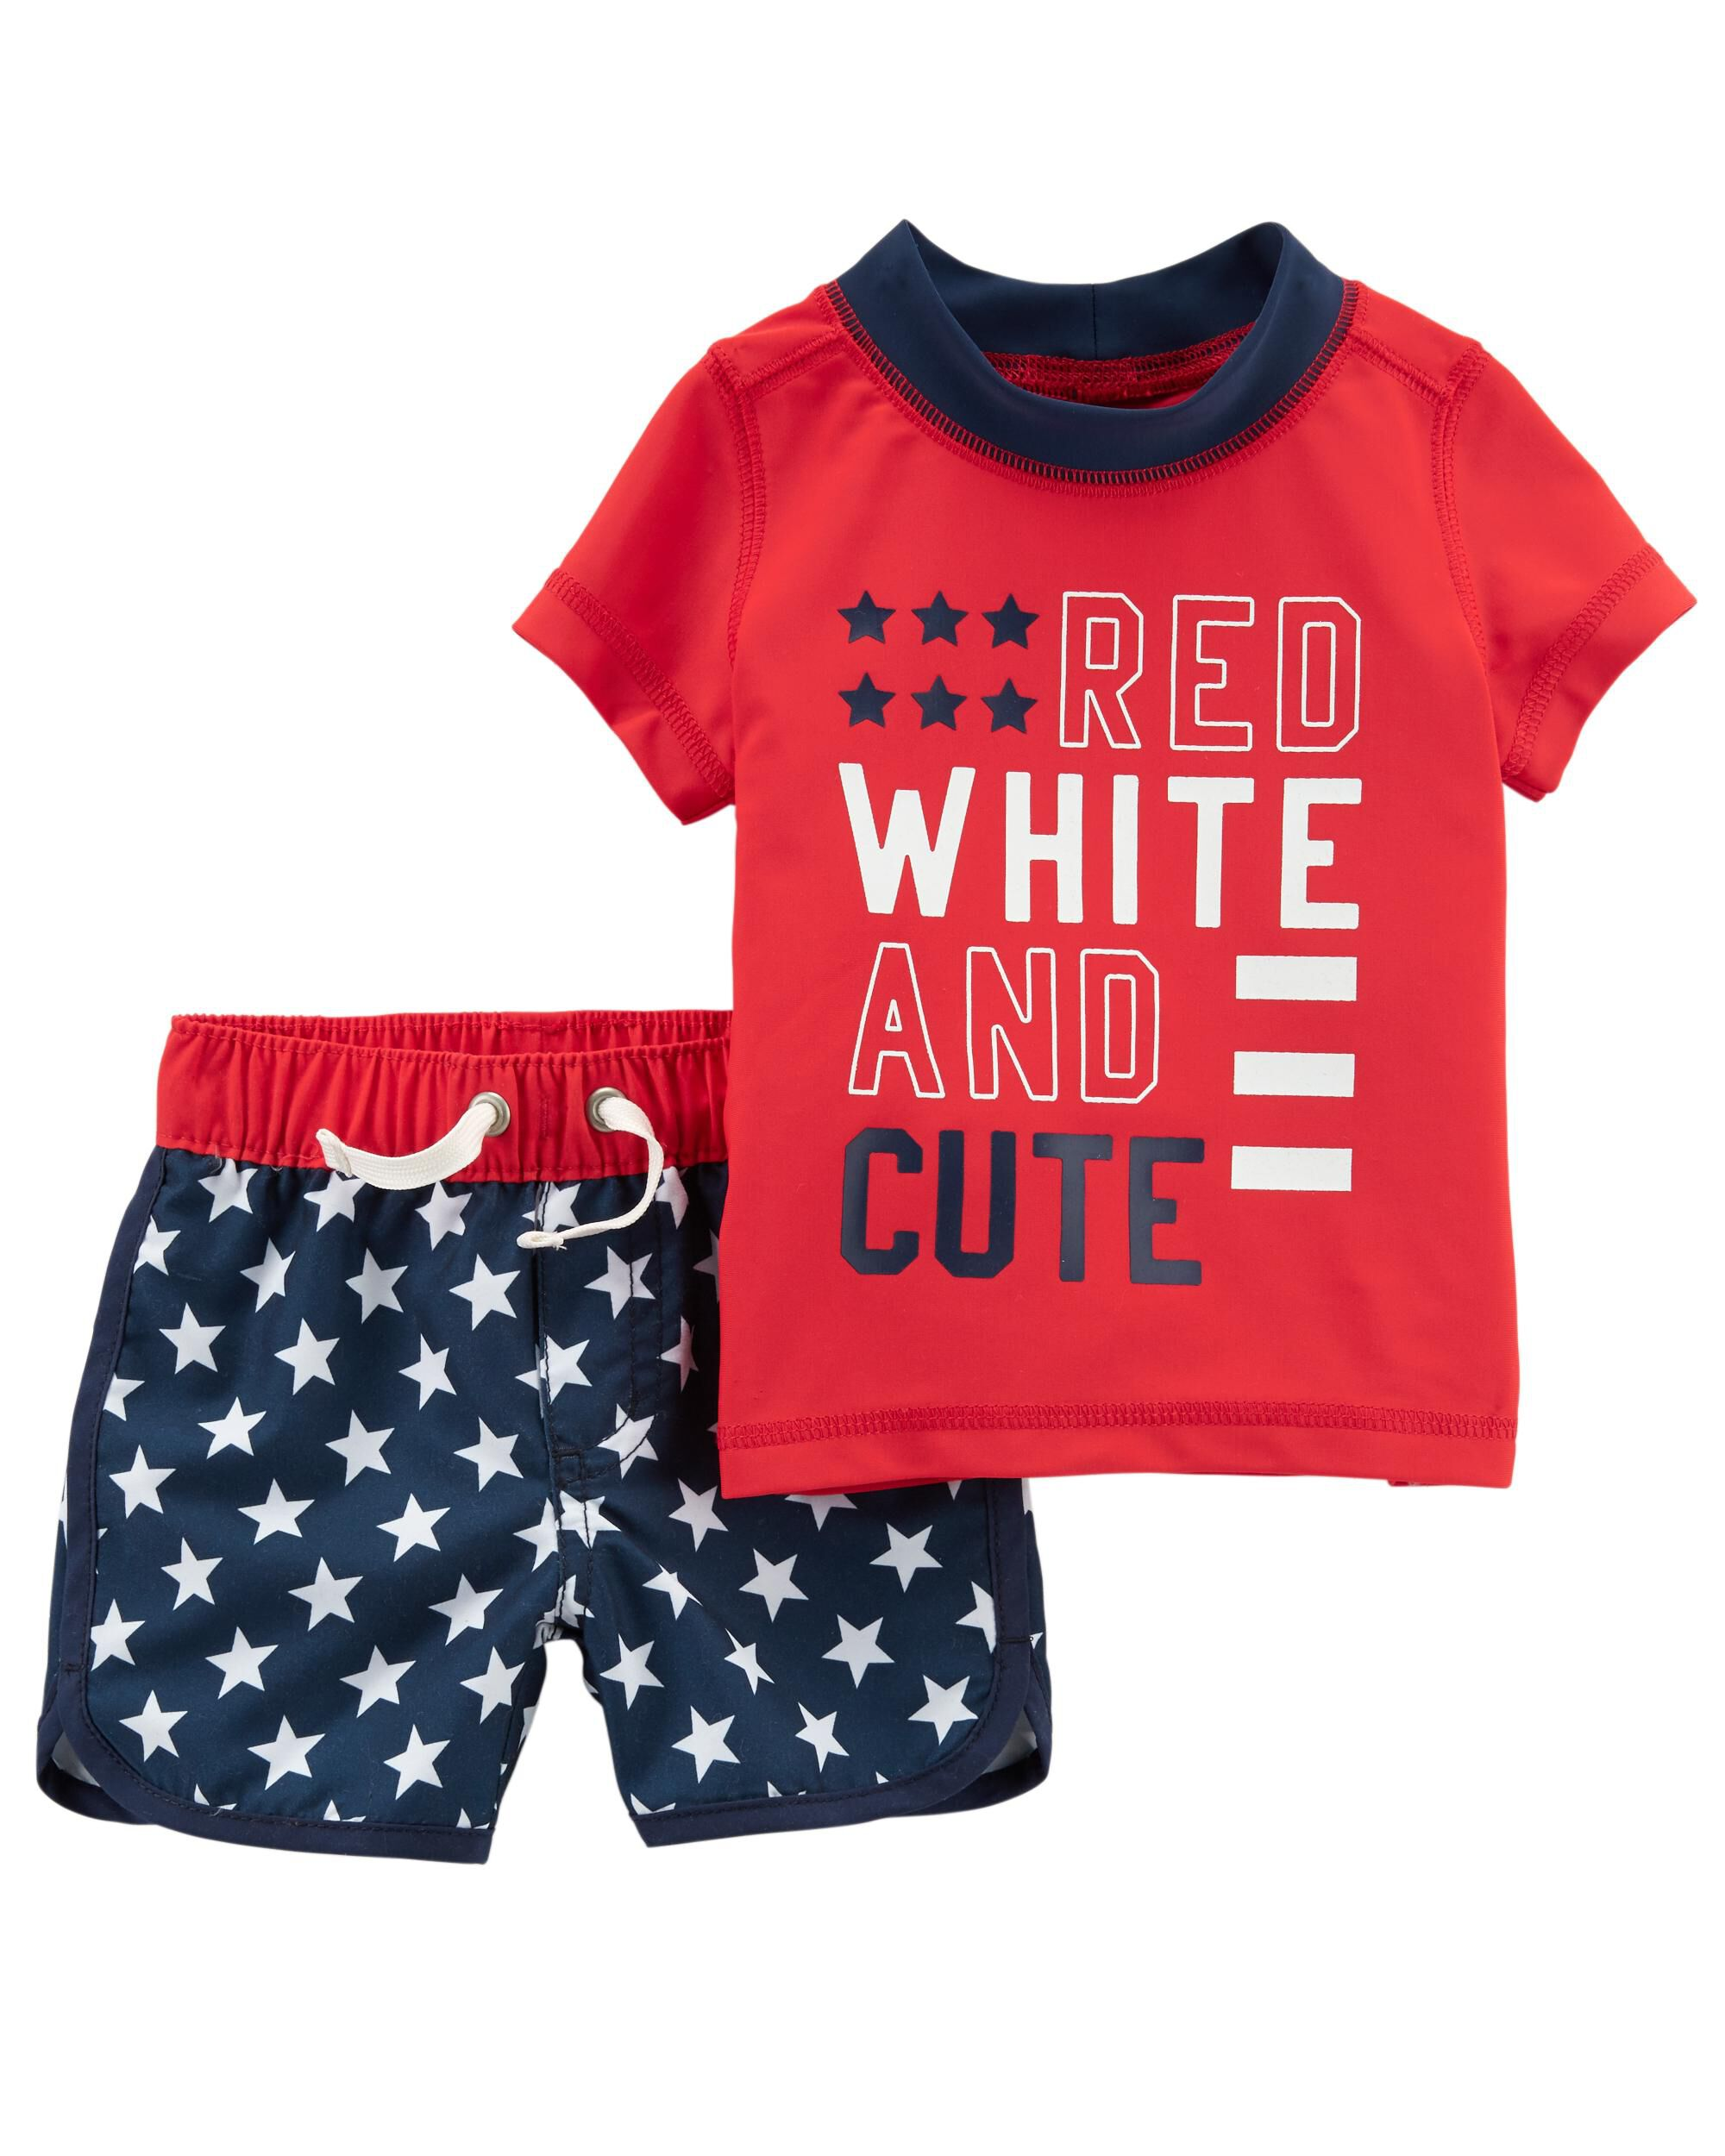 Carters Girls Red White Blue 4th of July 2-Piece Outfit NWT 6-9M or 12M